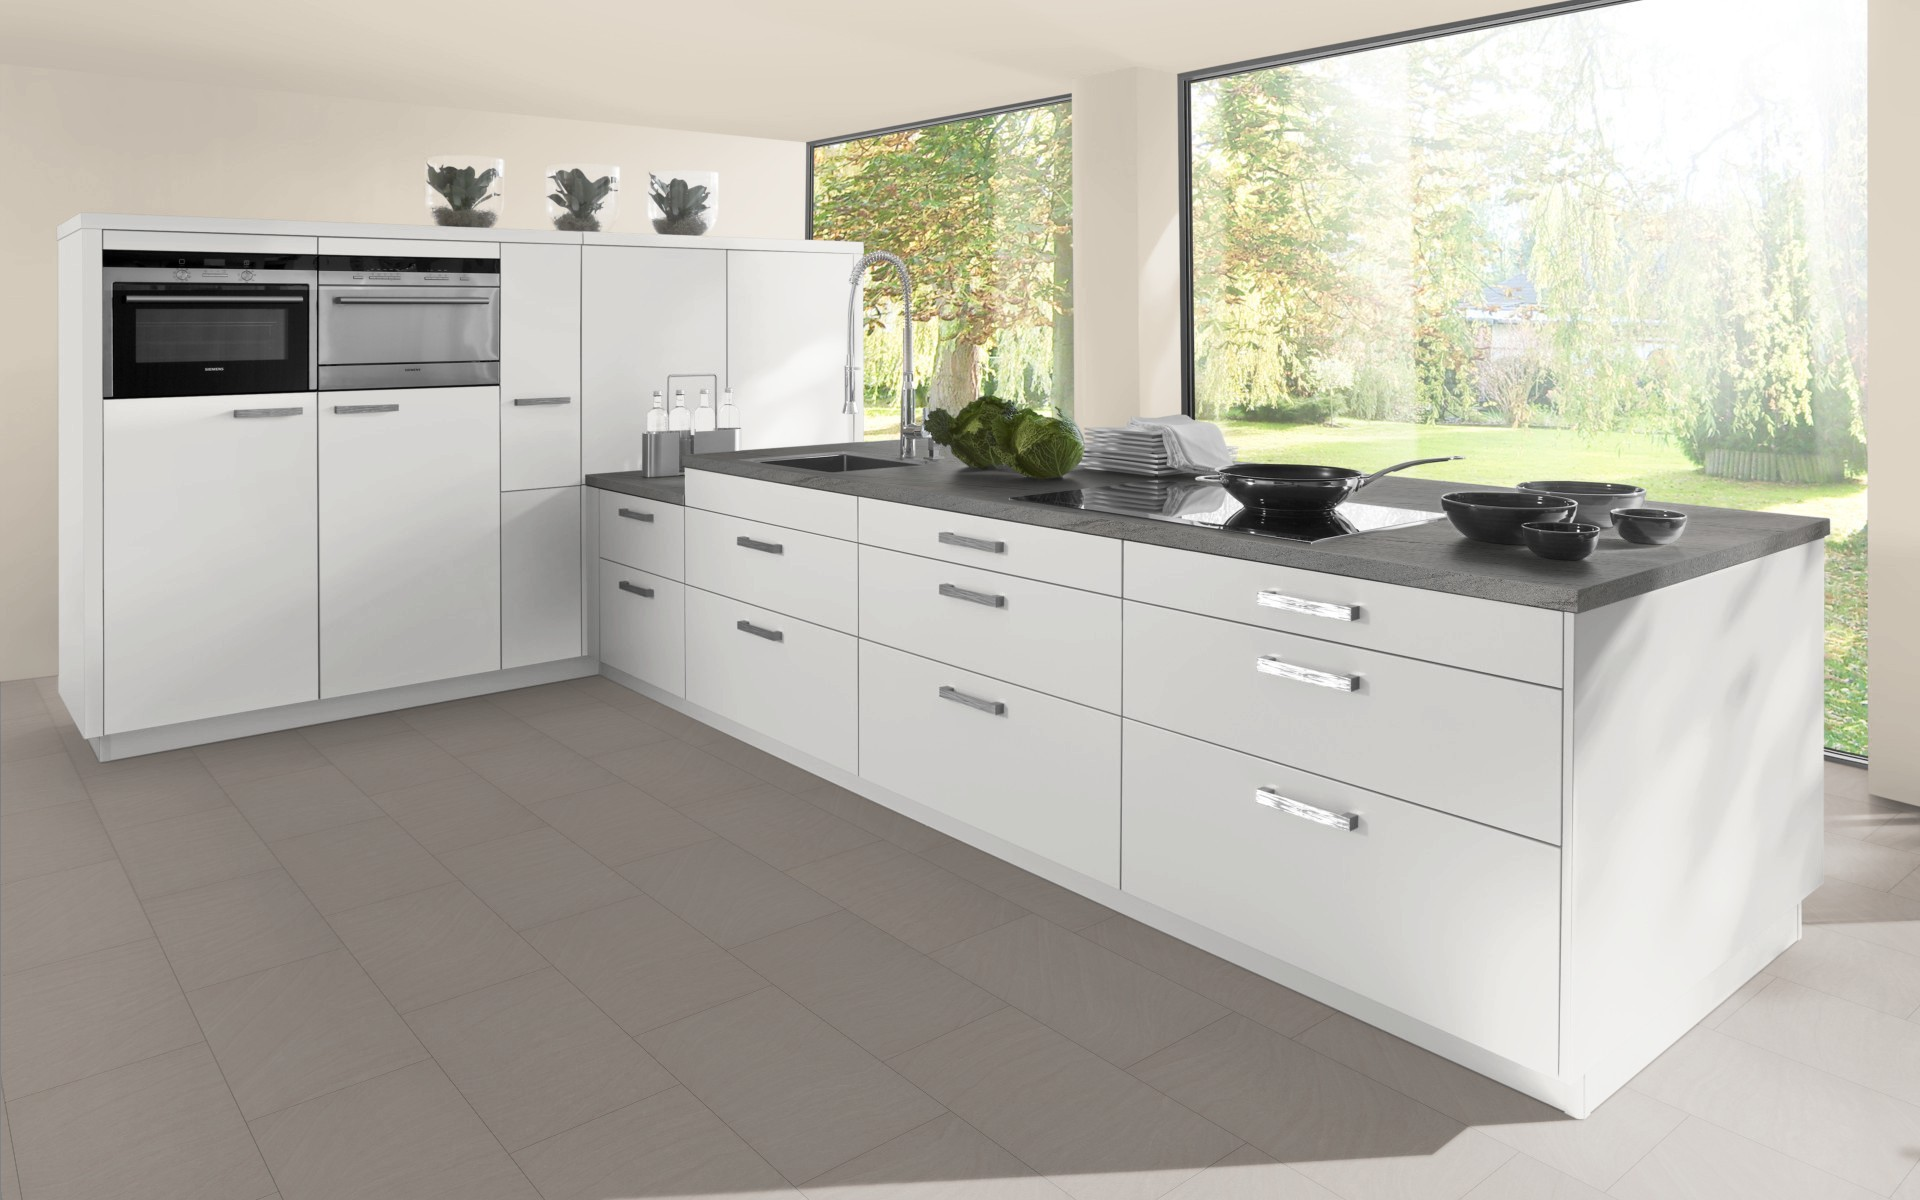 High gloss hi line base door trade kitchens for all for Kitchen cabinets 700mm